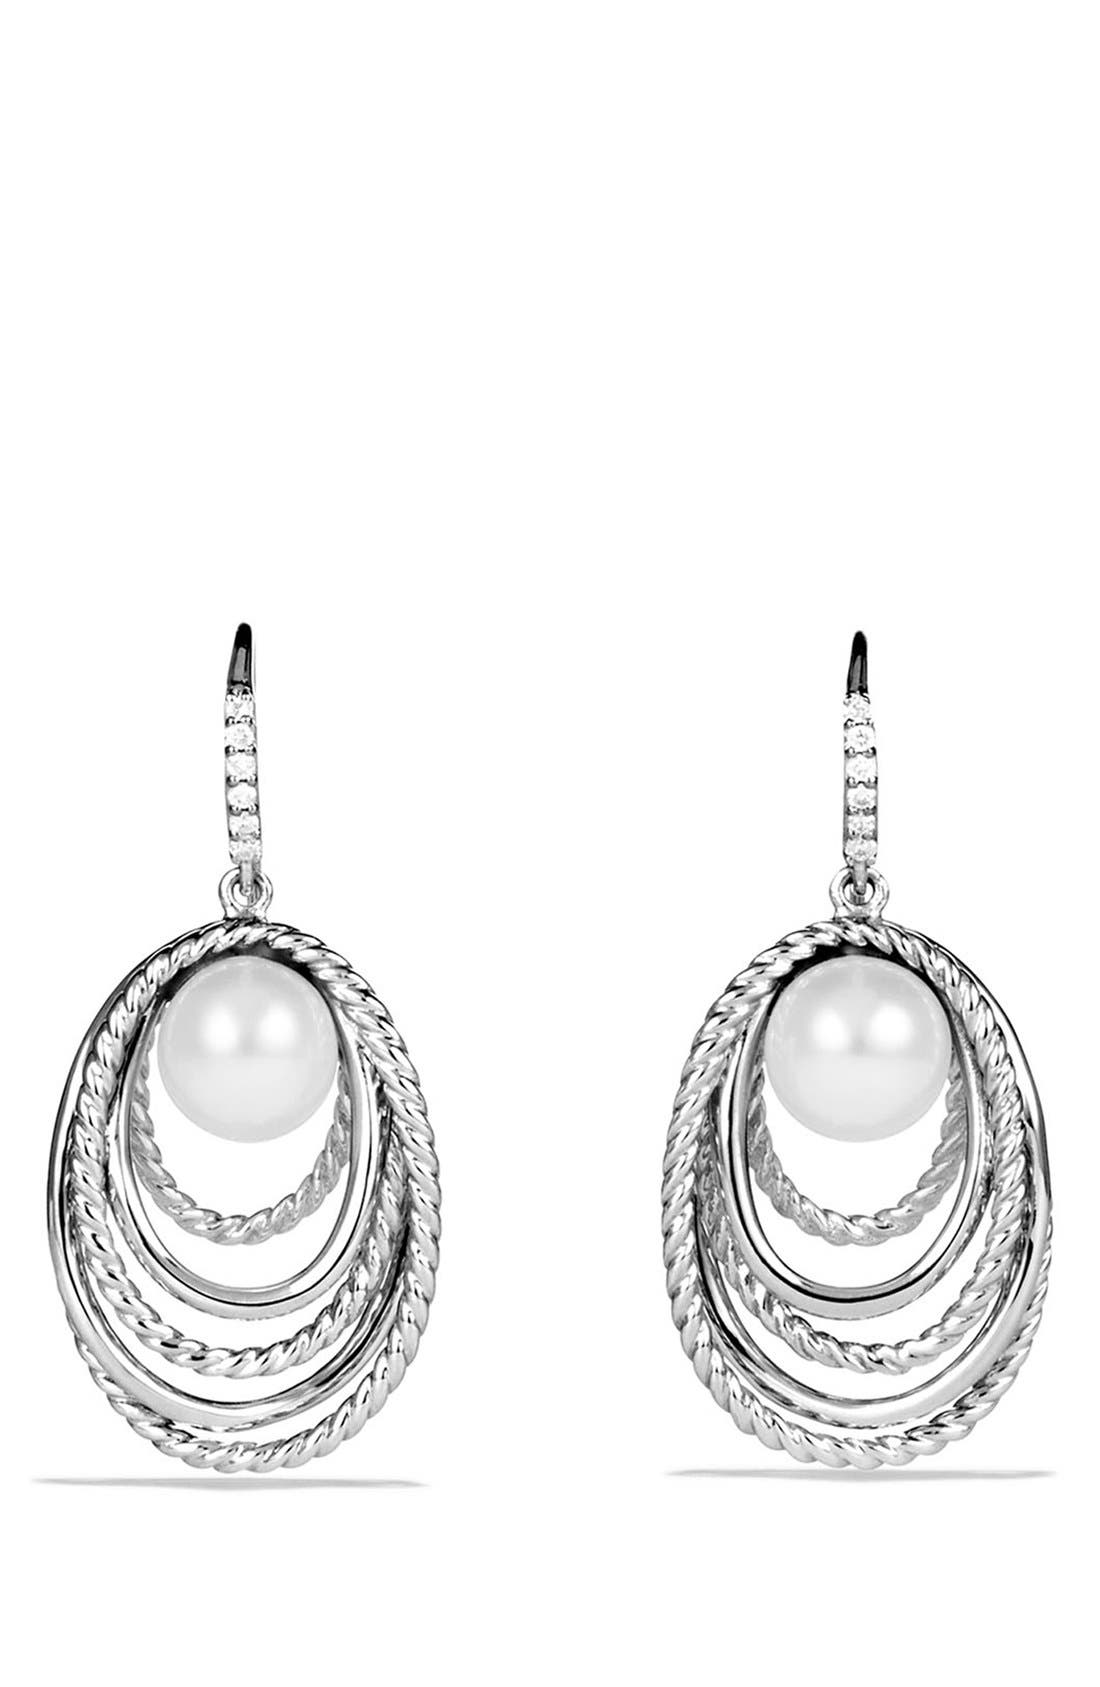 David Yurman 'Crossover' Pearl Drop Earrings with Diamonds